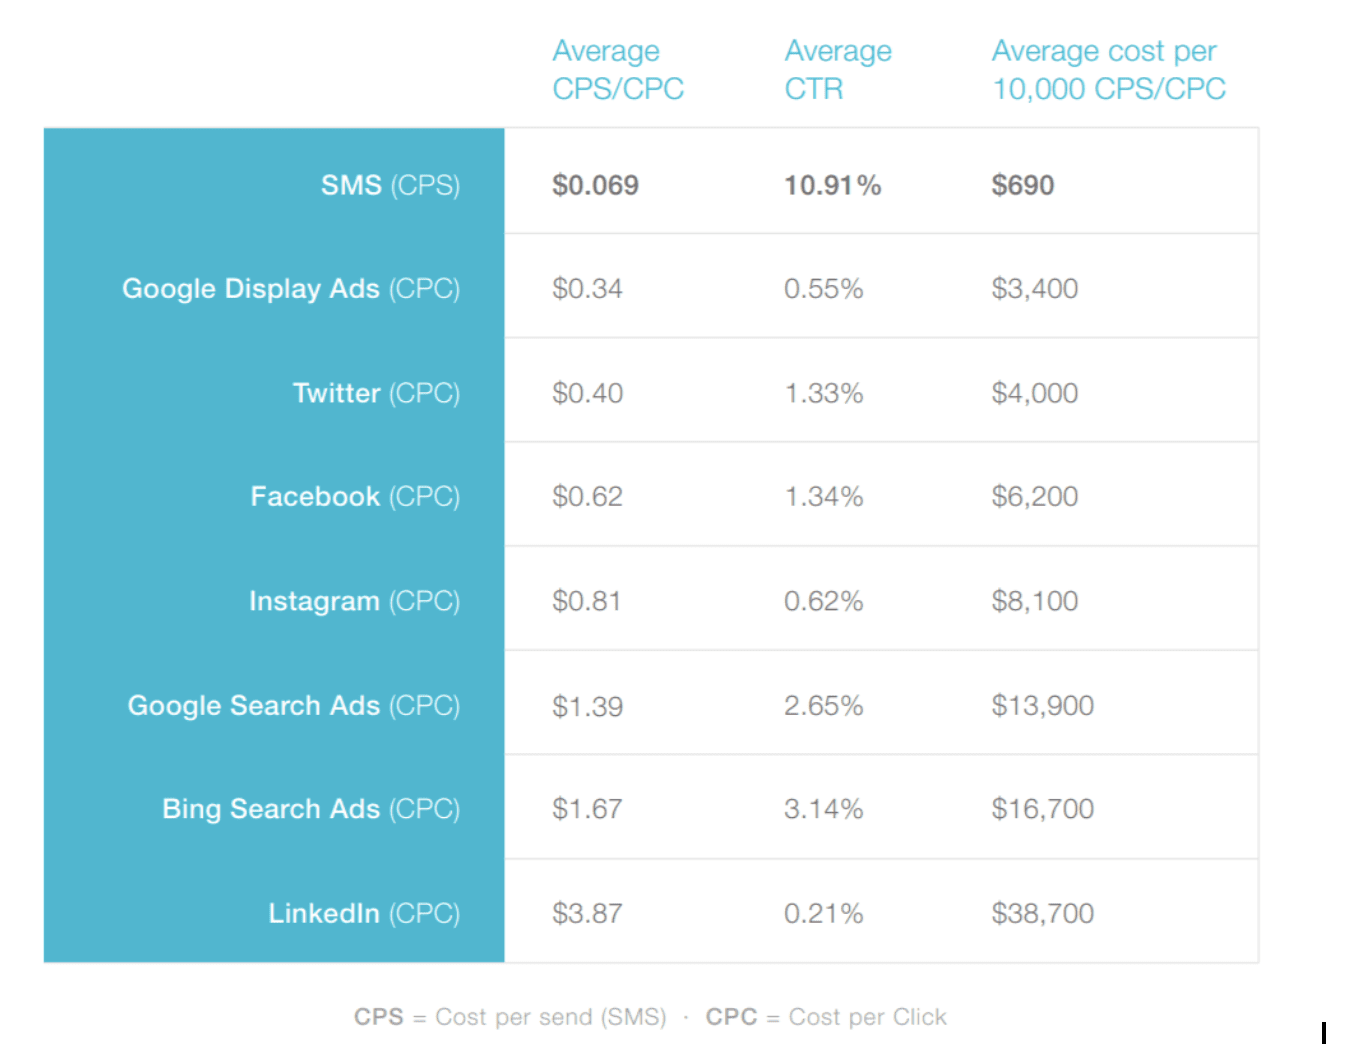 SMS Marketing Statistics comparing SMS with other advertising mediums